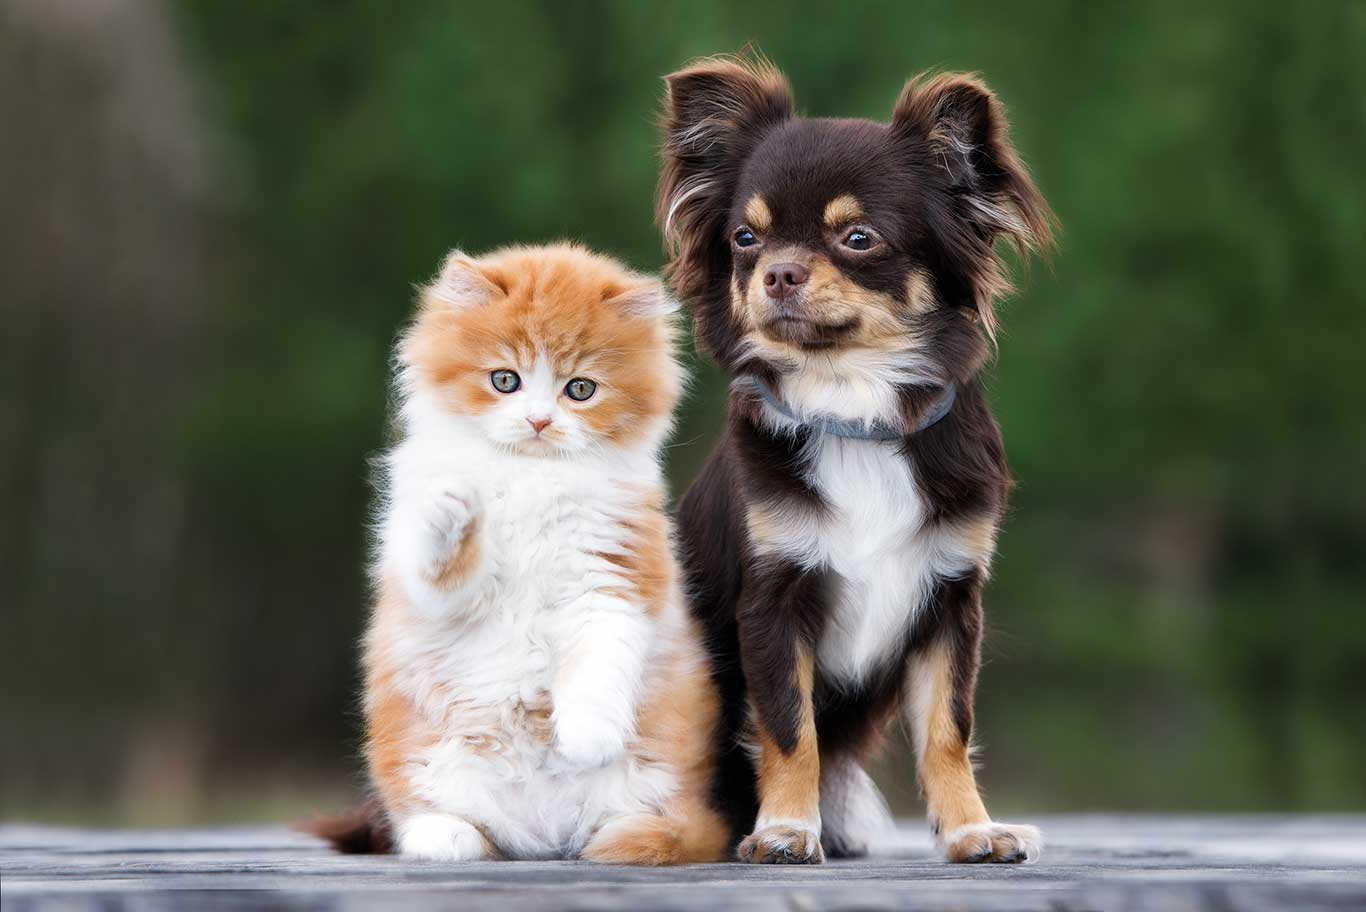 Cute puppy and kitten standing next to each others